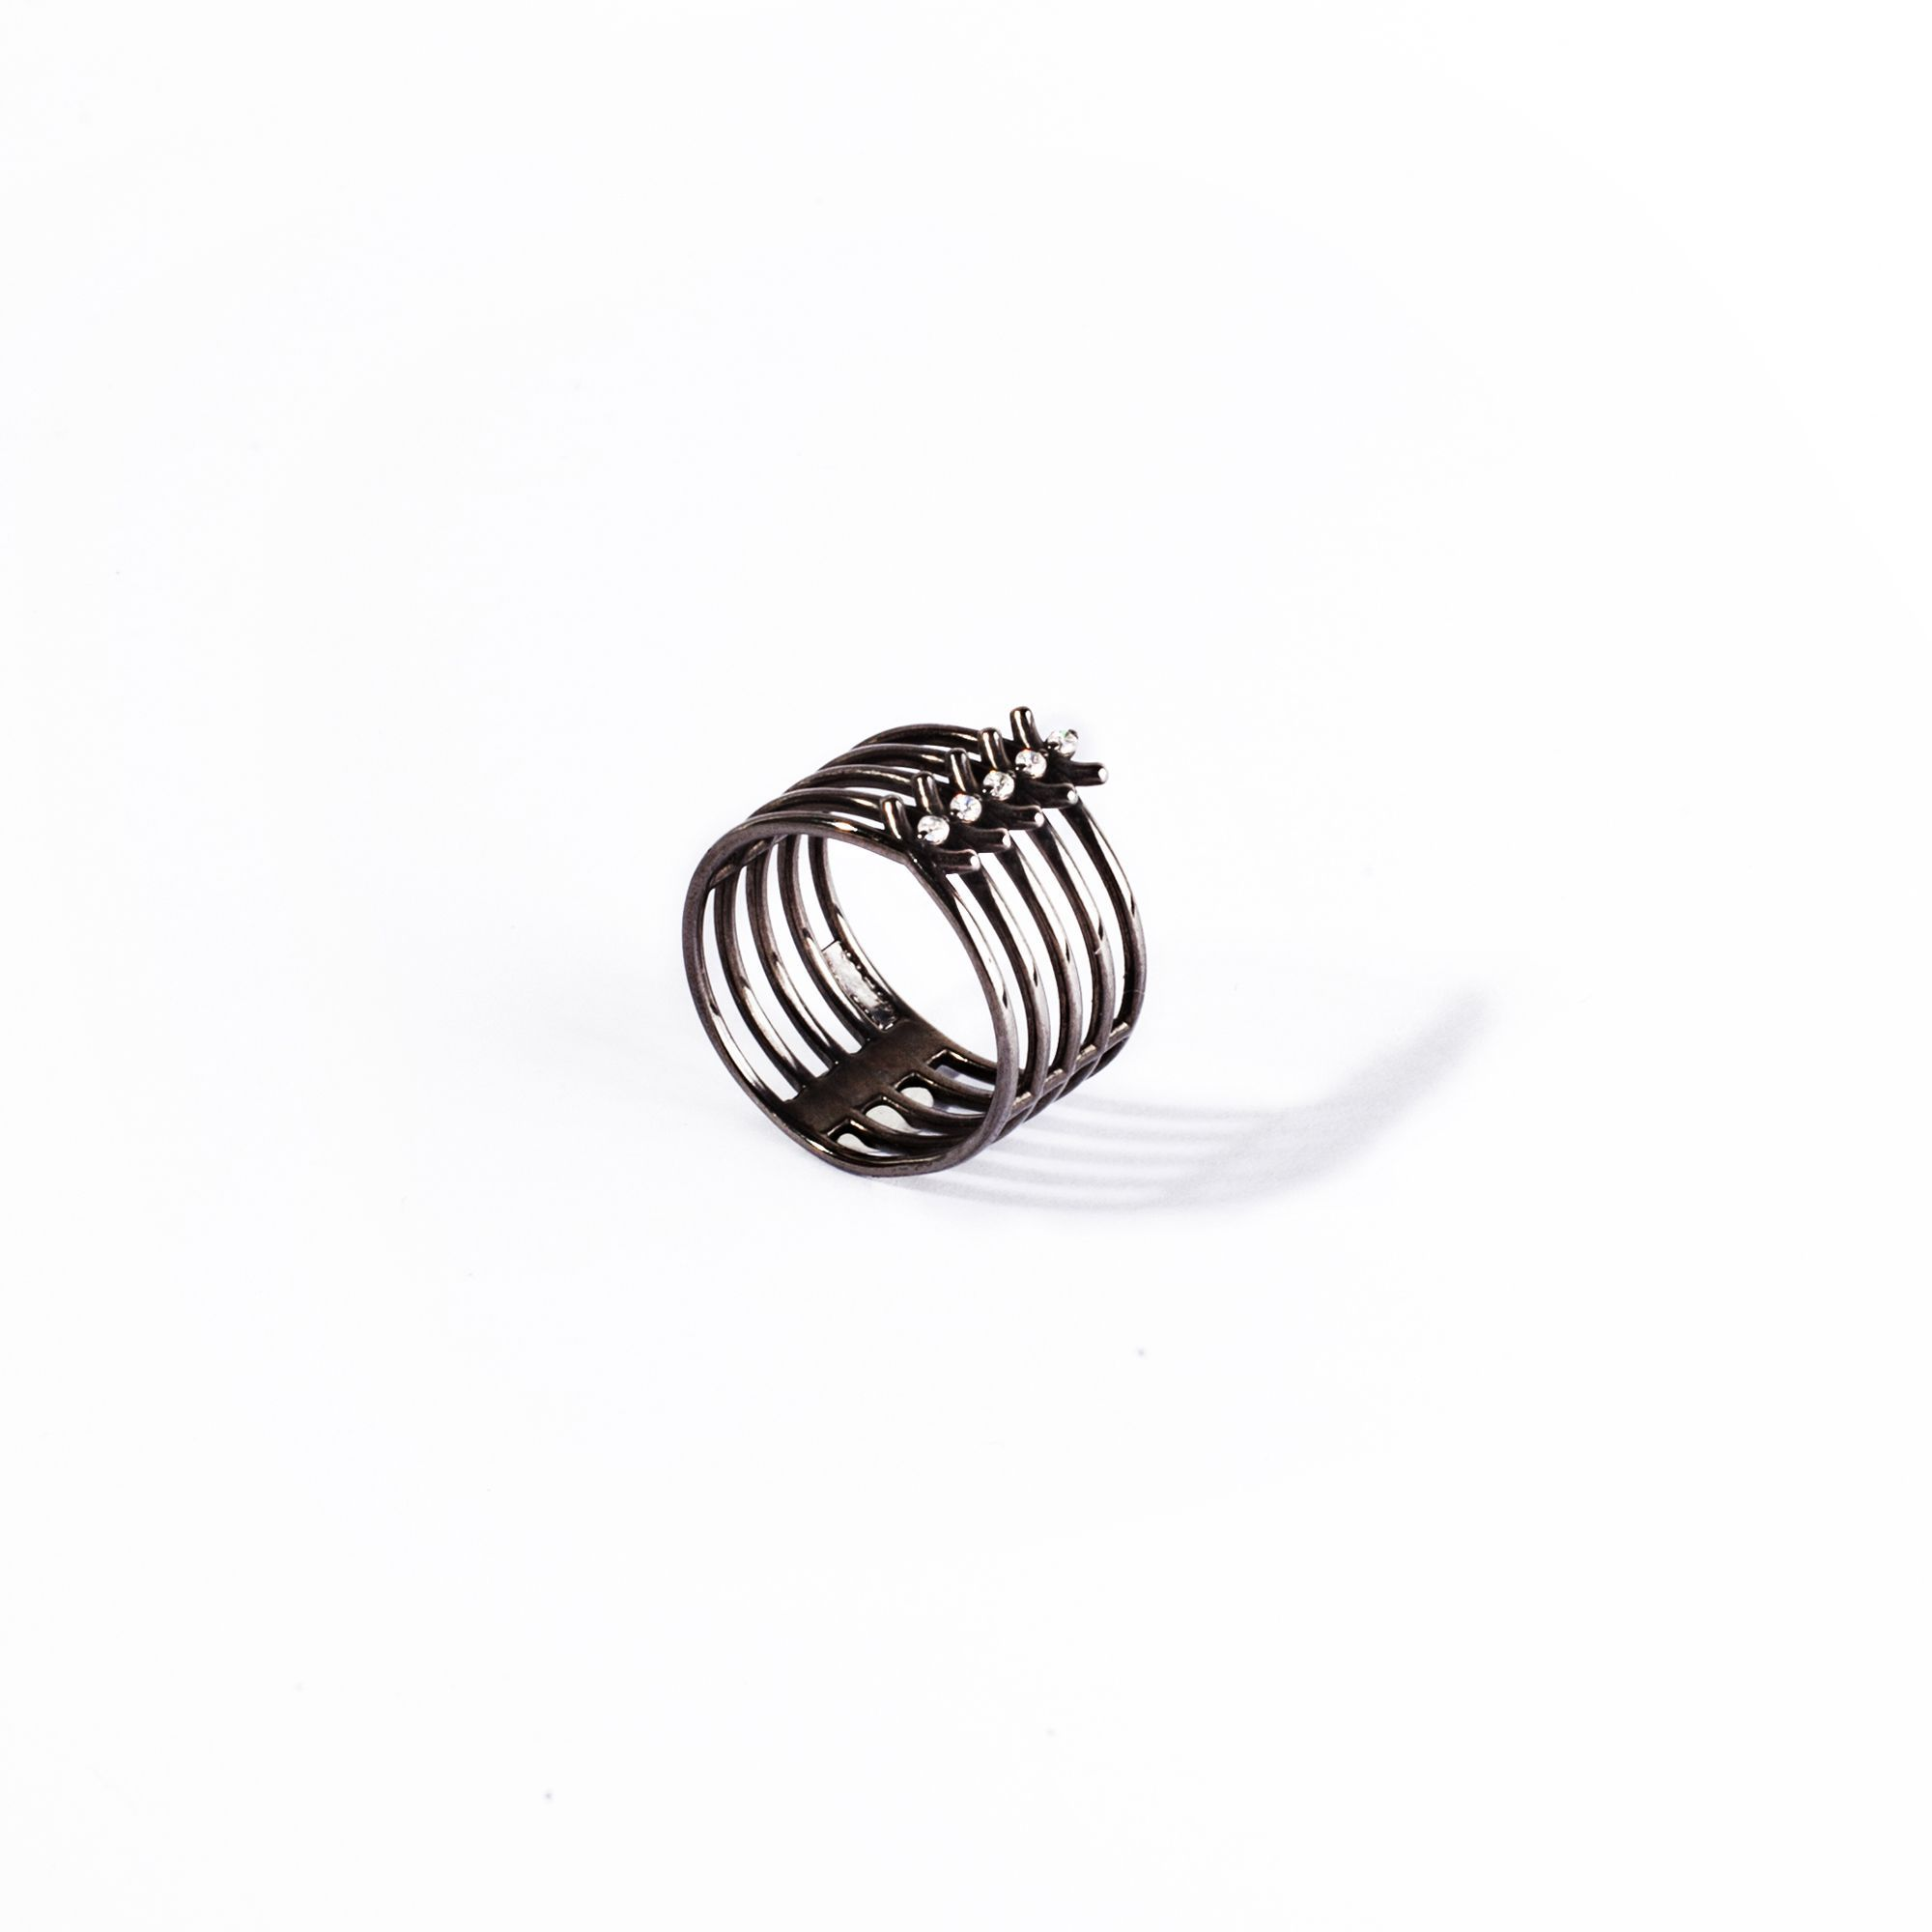 5 element 'Spinae' ring black silver ring